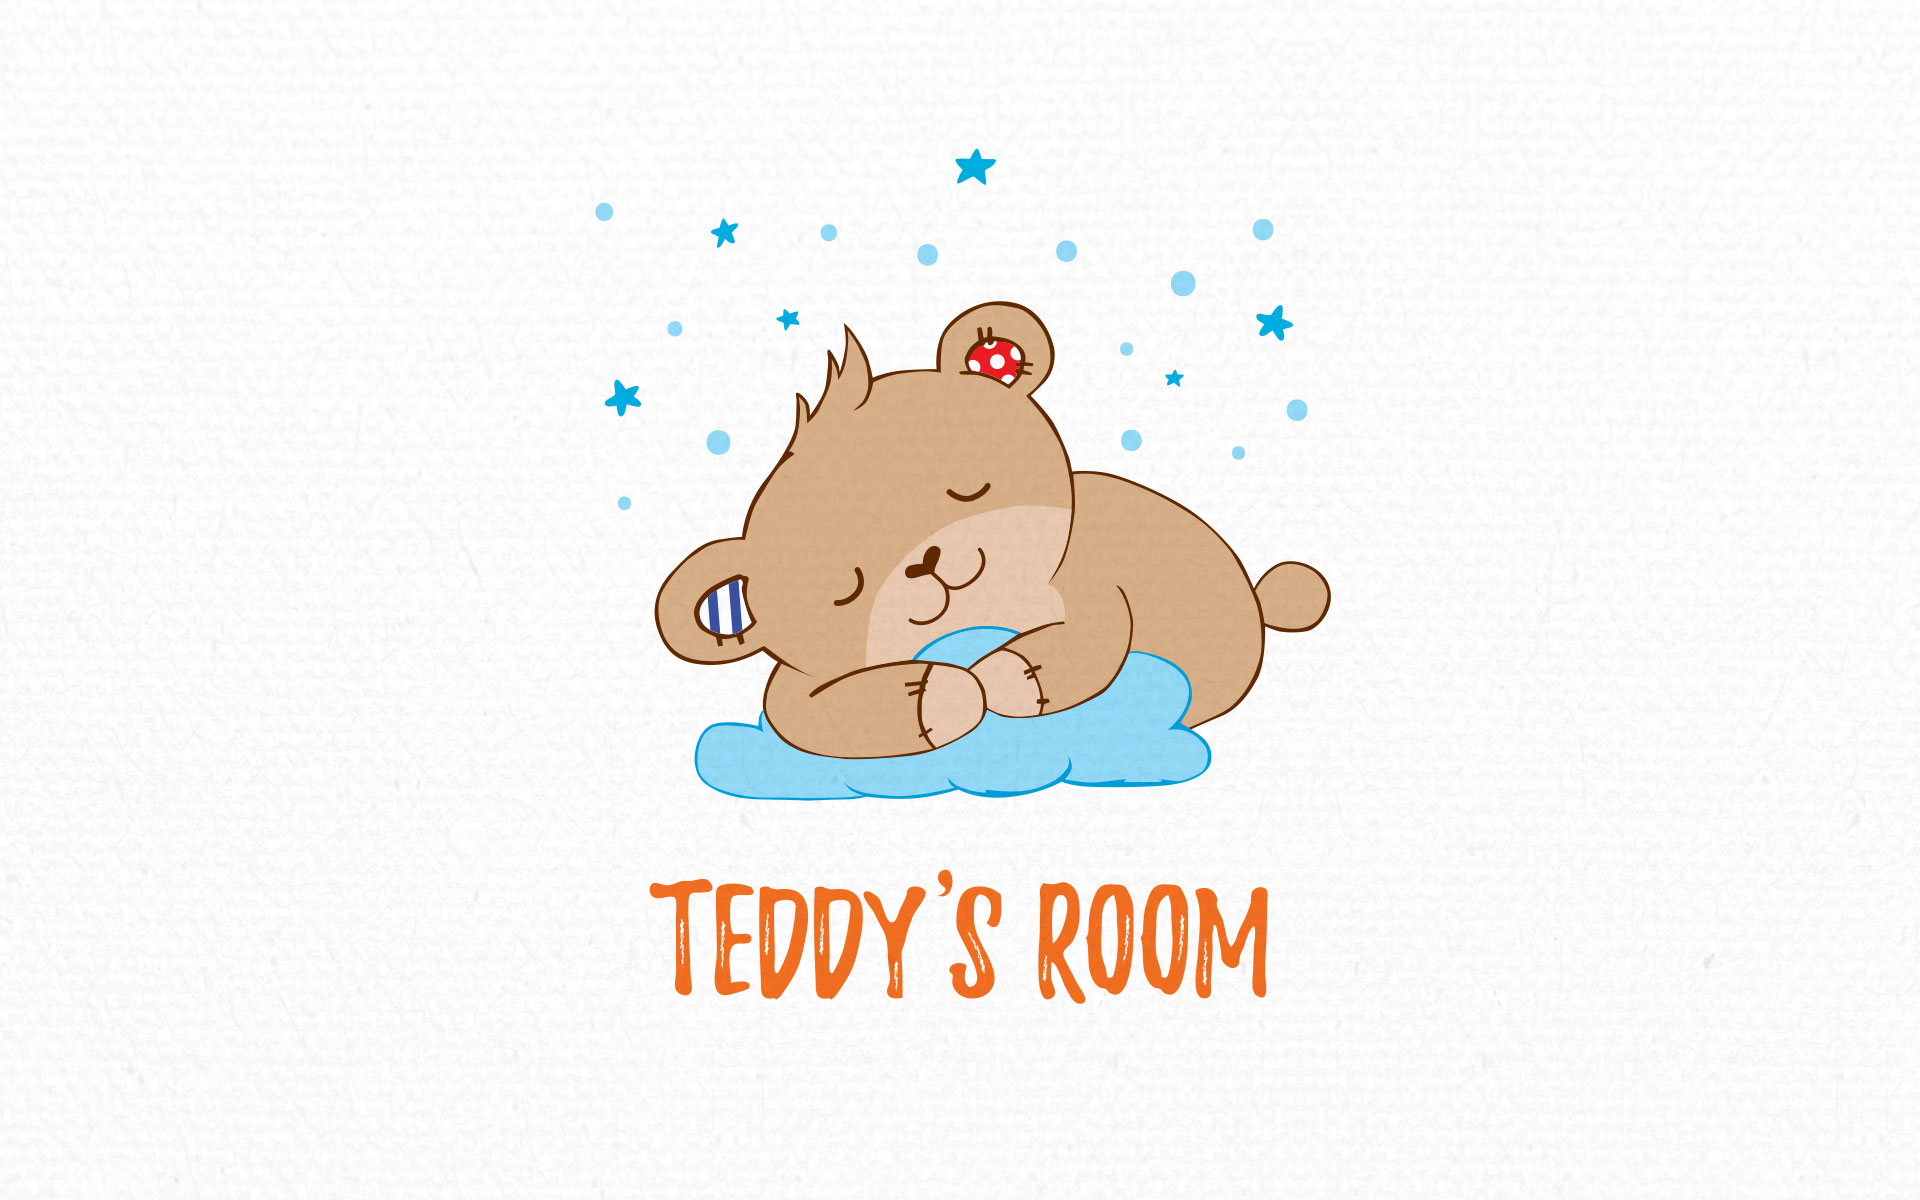 Teddy's Room